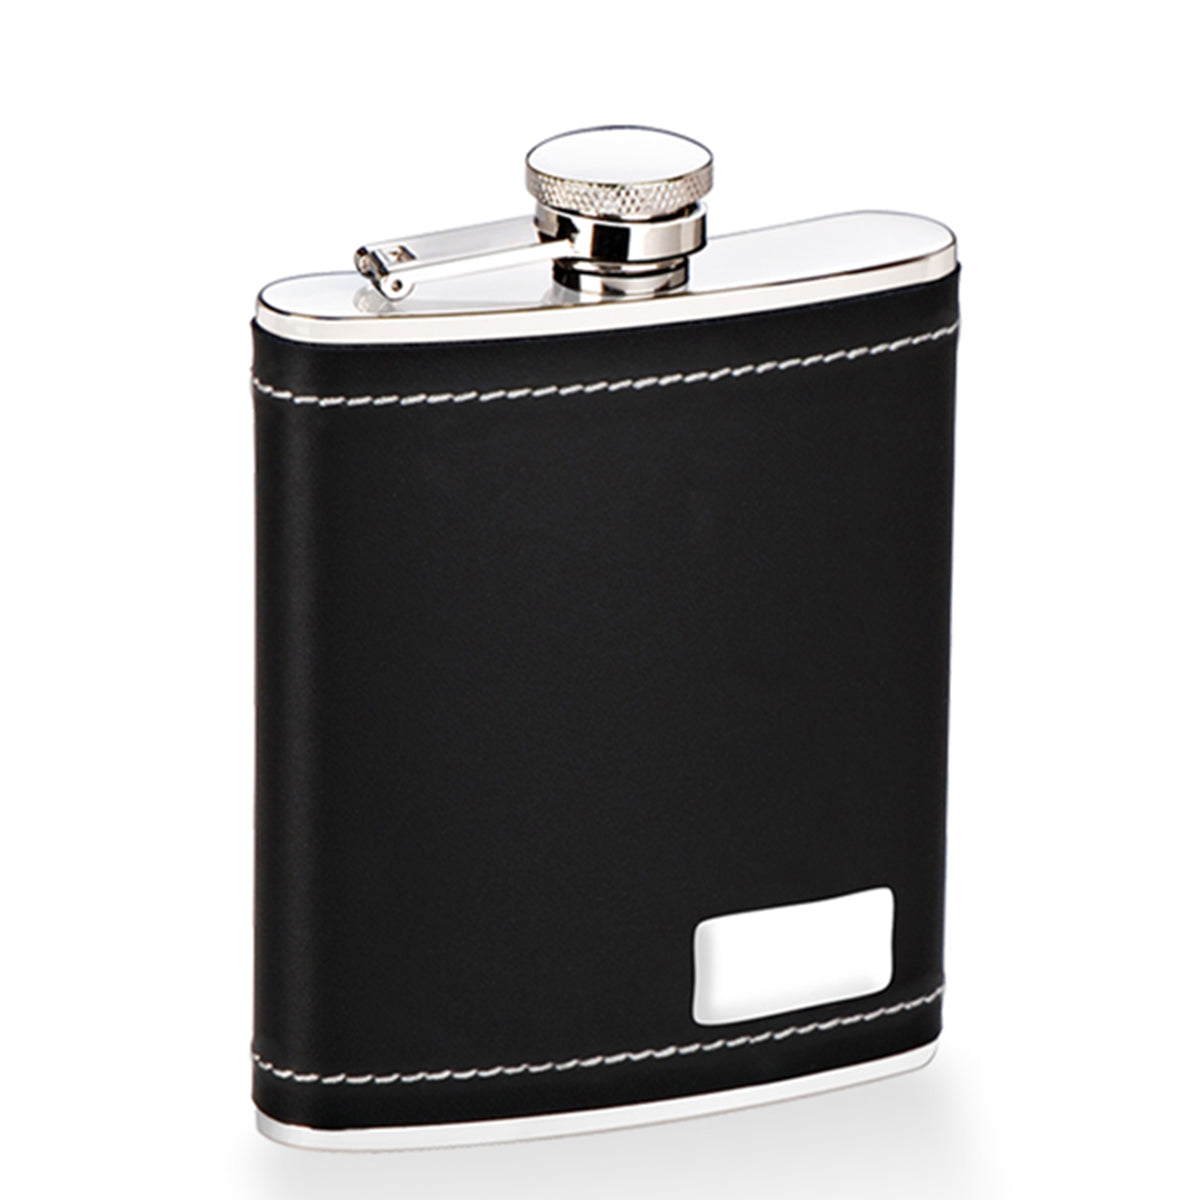 Keep it Personal Flask (6 oz.)